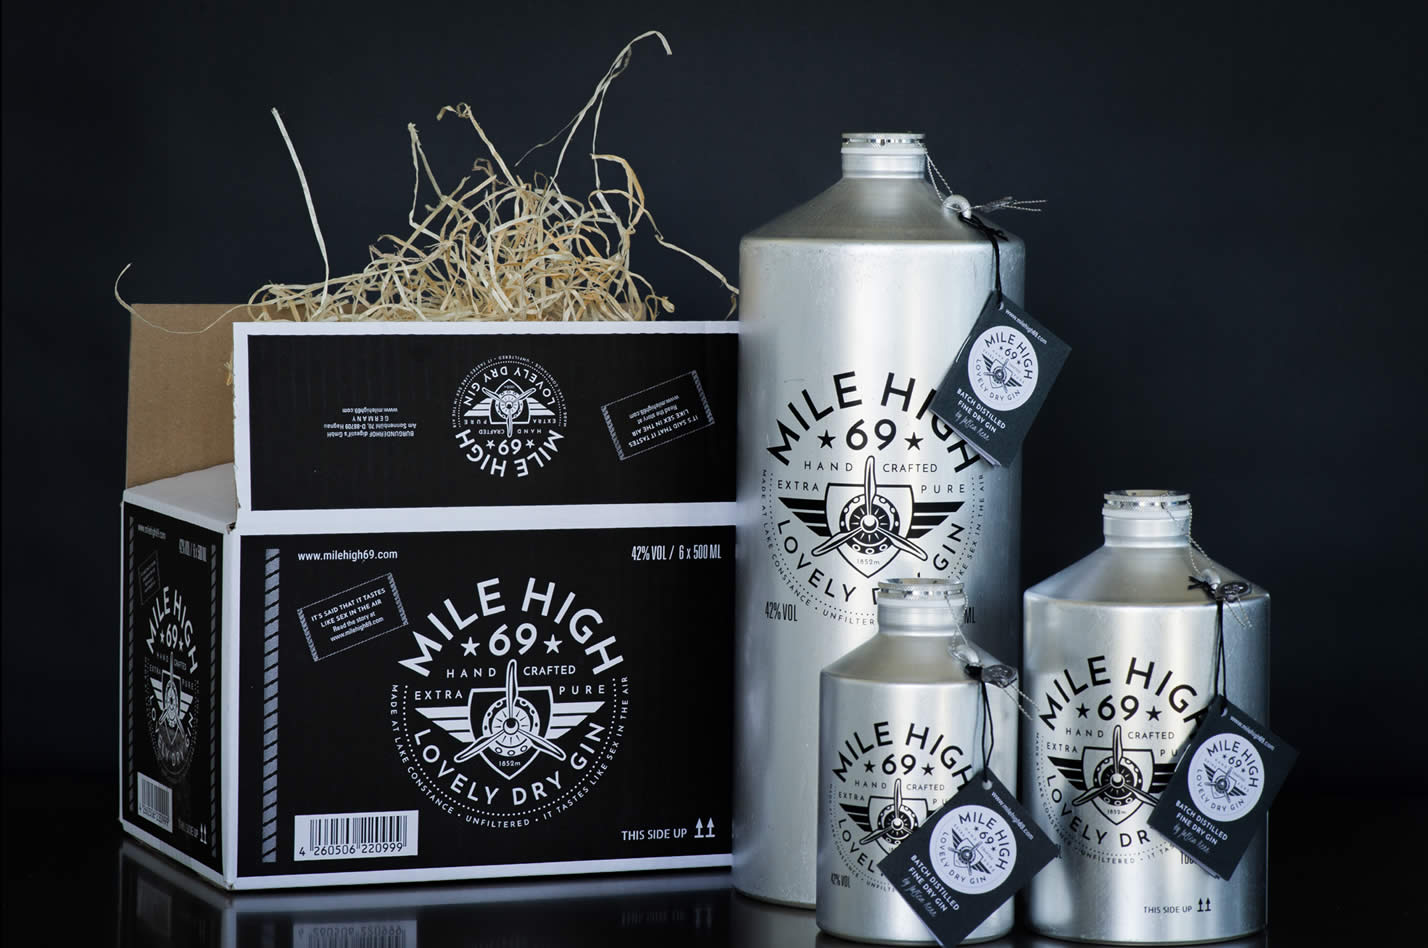 Mile High 69 Gin Design Verpackung Catish Crestive